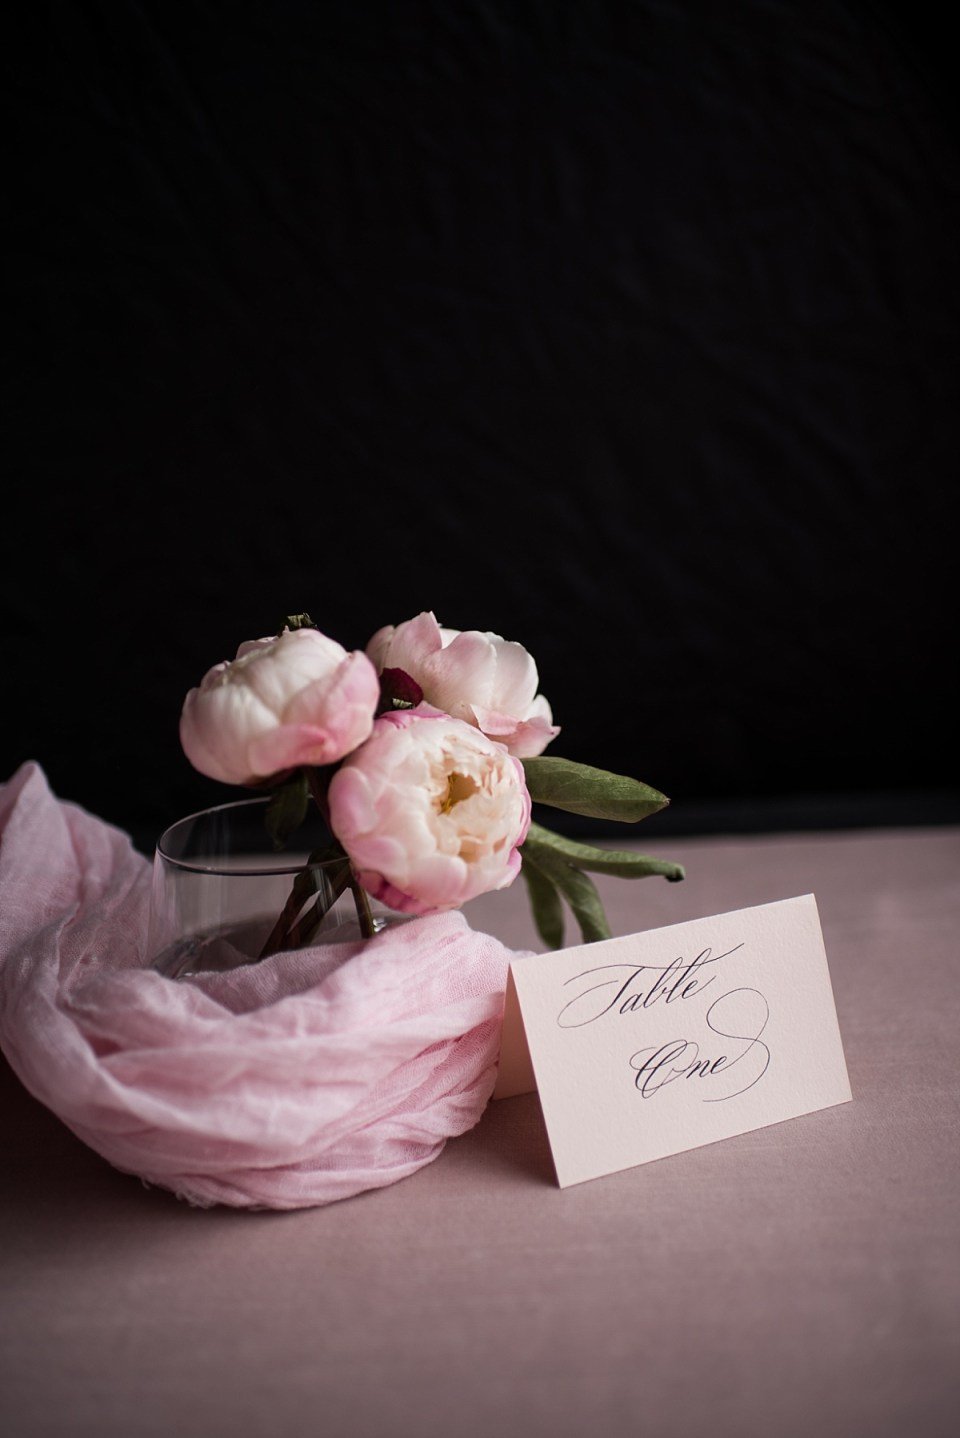 Peony and Plume Calligraphy Branding Session by Erin Tetterton Photography in Alexandria, VA